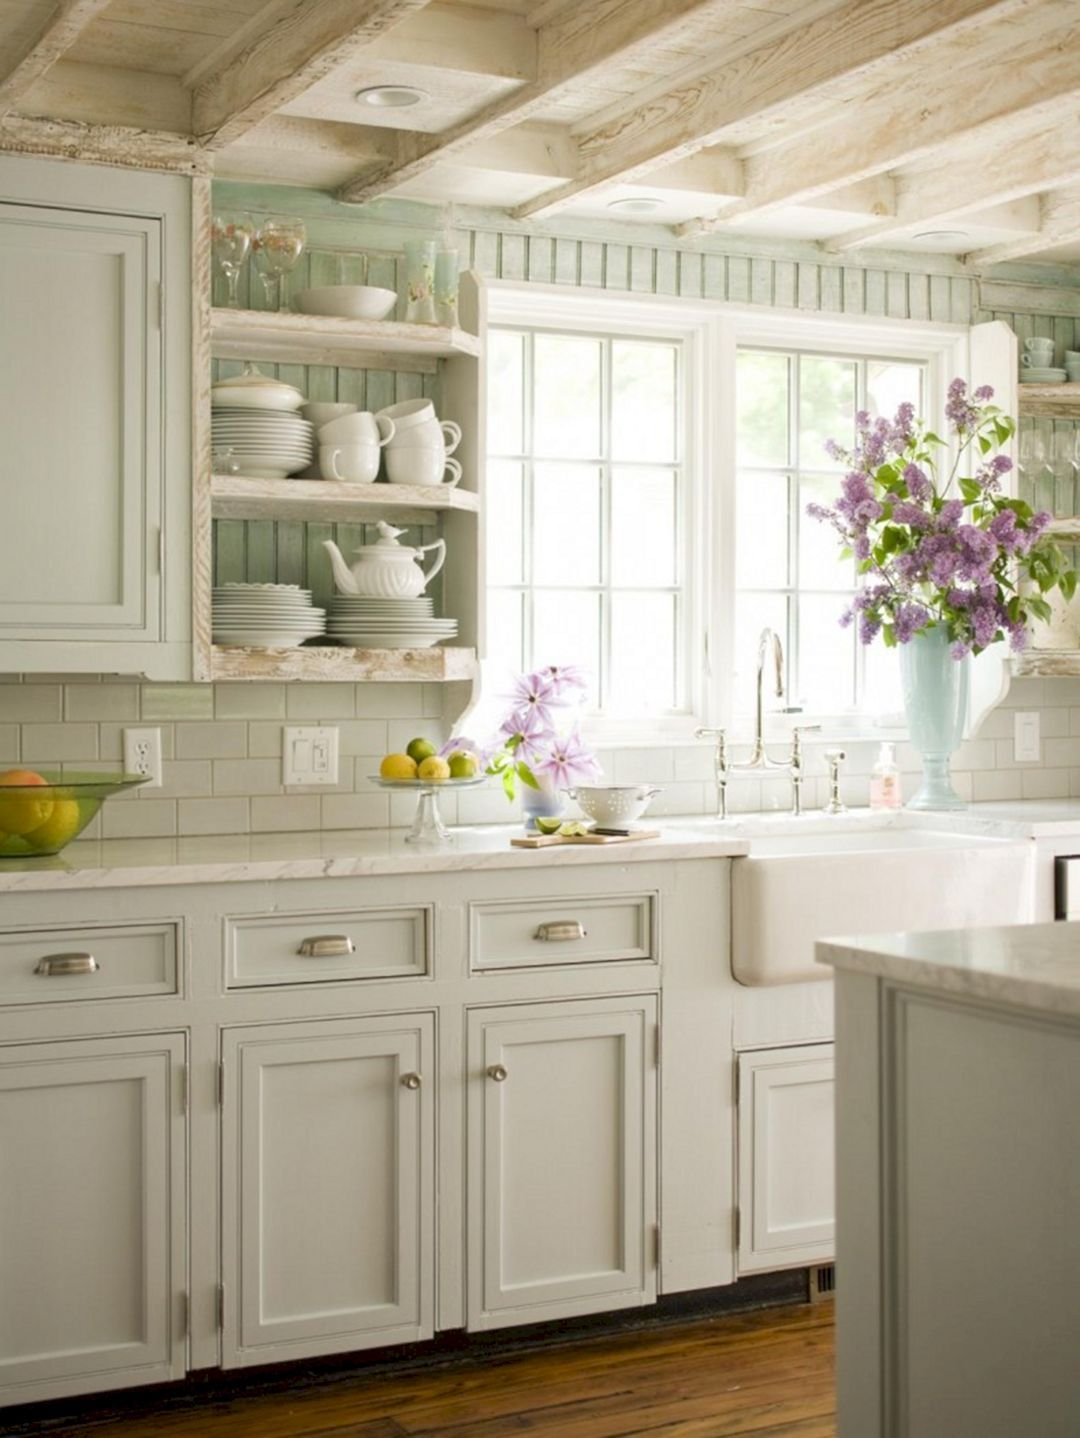 Best Ideas French Country Style Home Designs 15 | French country ...